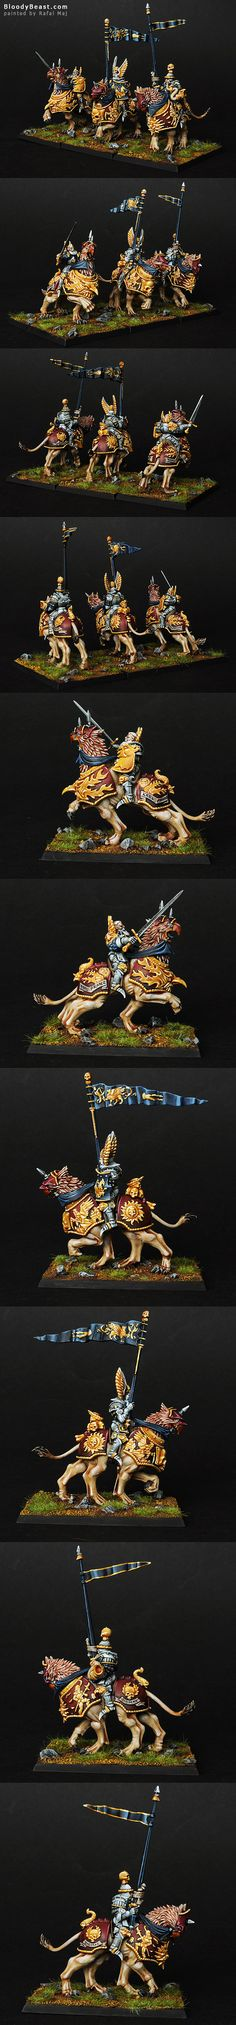 Visit the post for more. Warhammer Empire, Warhammer Fantasy, Warhammer 40k Miniatures, Wonders Of The World, War Hammer, Knights, Panther, Badass, Cities